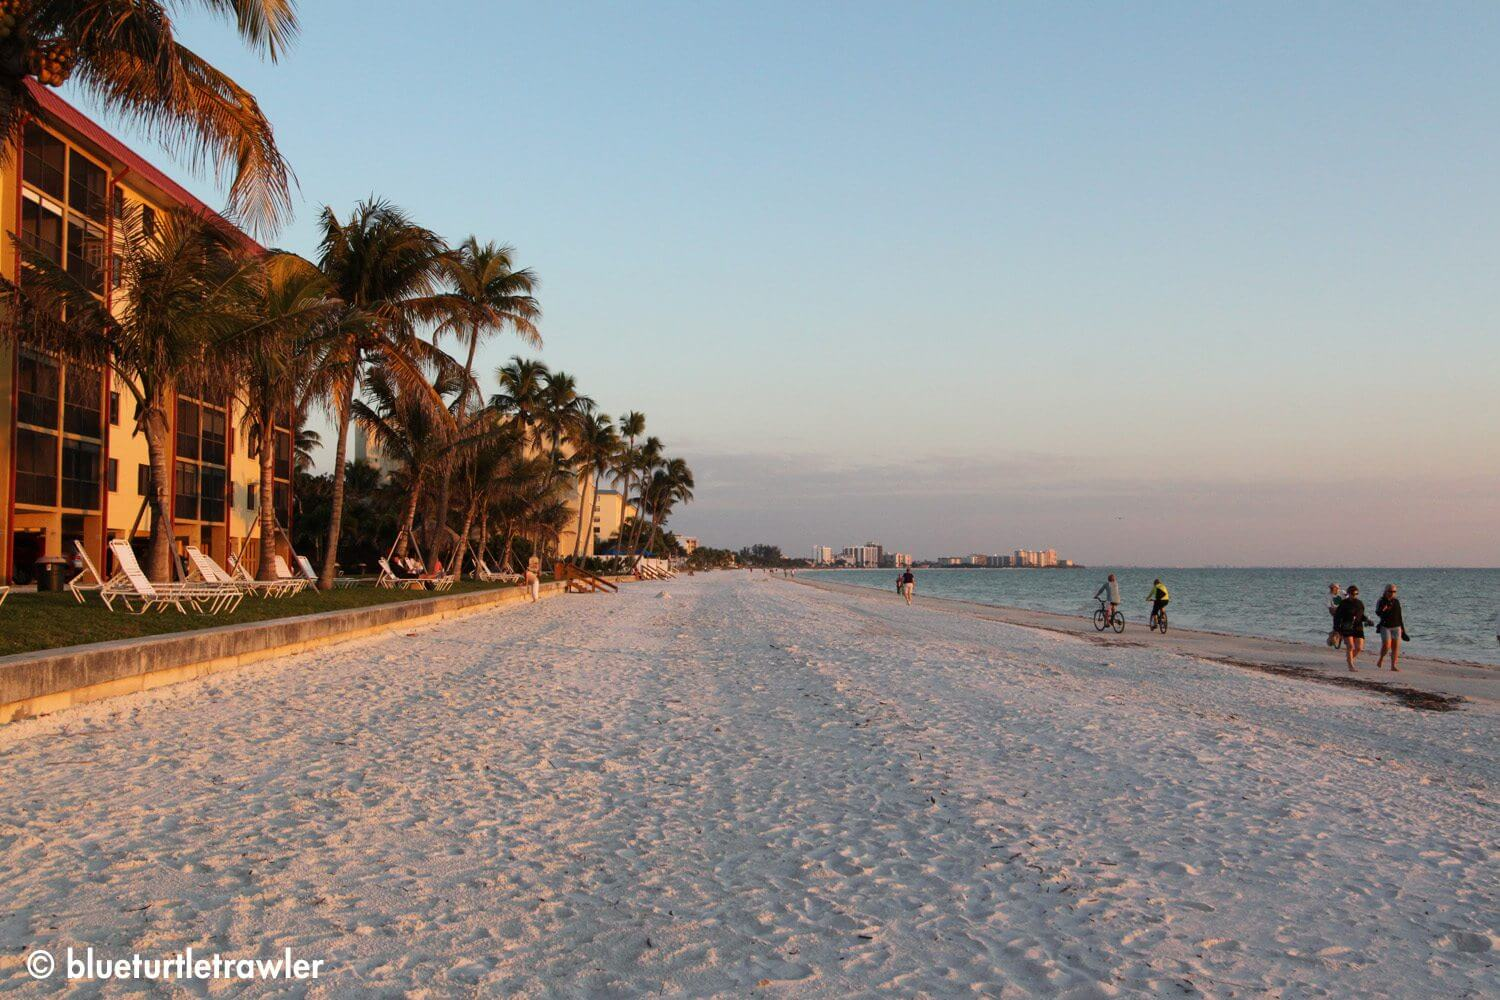 Fort Myers Beach - makes the beach look alot more vast